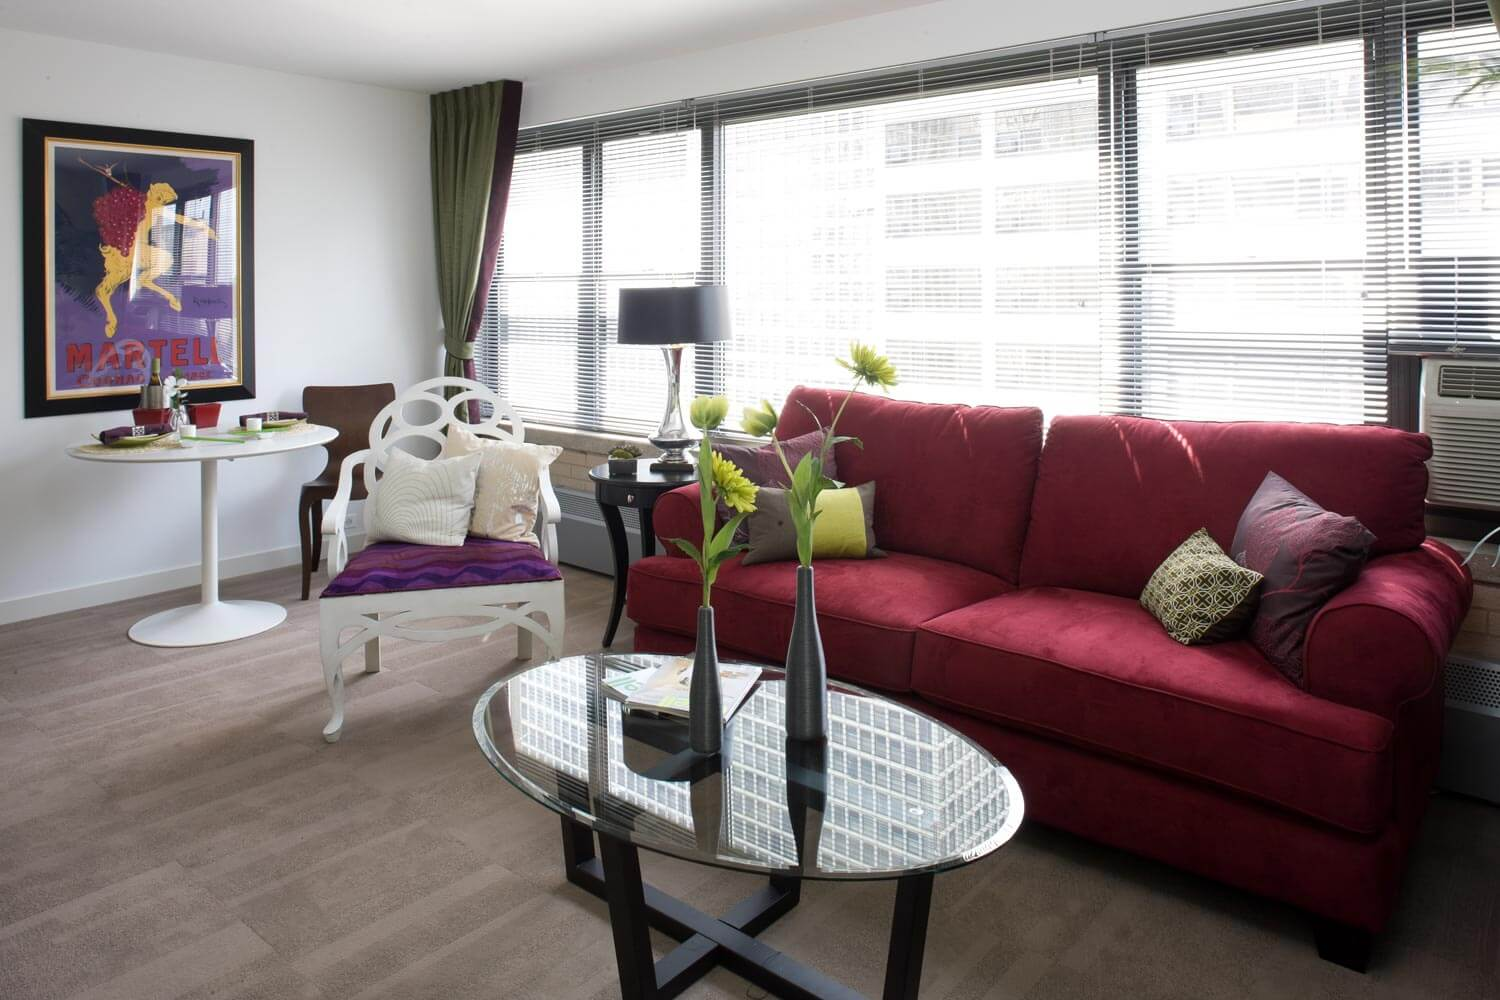 Affordable Open Concept 1 Bedroom Apartment in Chicago. Next Level Luxury  The Best Penthouse Level - 1 Bedroom Apartments For Rent In Chicago Carpetcleaningvirginia.com